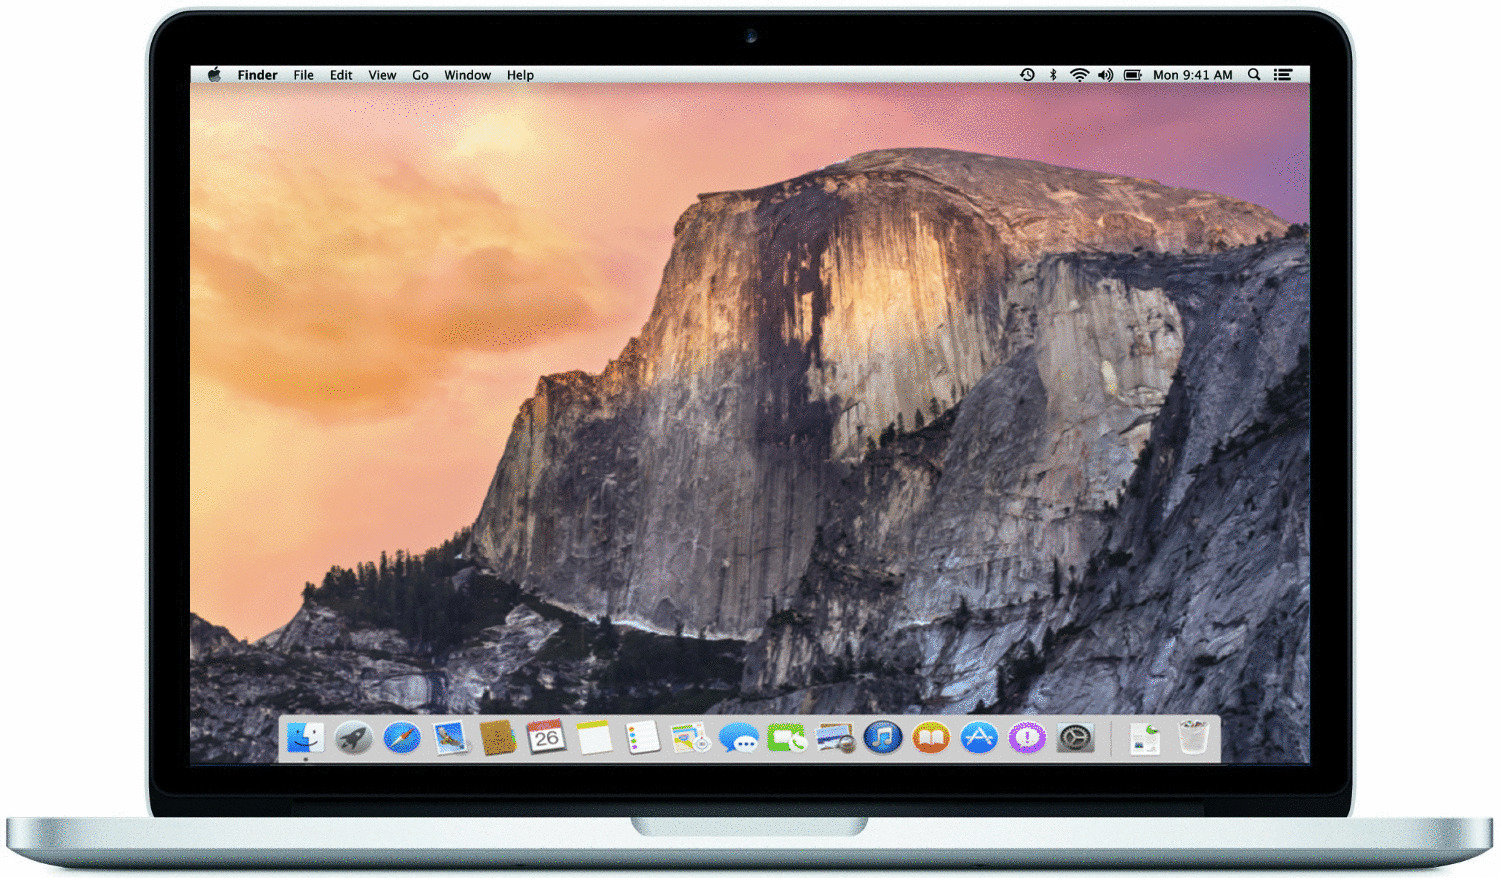 Apple MacBook Pro CTO 15.4 (Retina Display) 2.8 GHz Intel Core i7 16 GB RAM 256 GB PCIe SSD [Mid 2015]